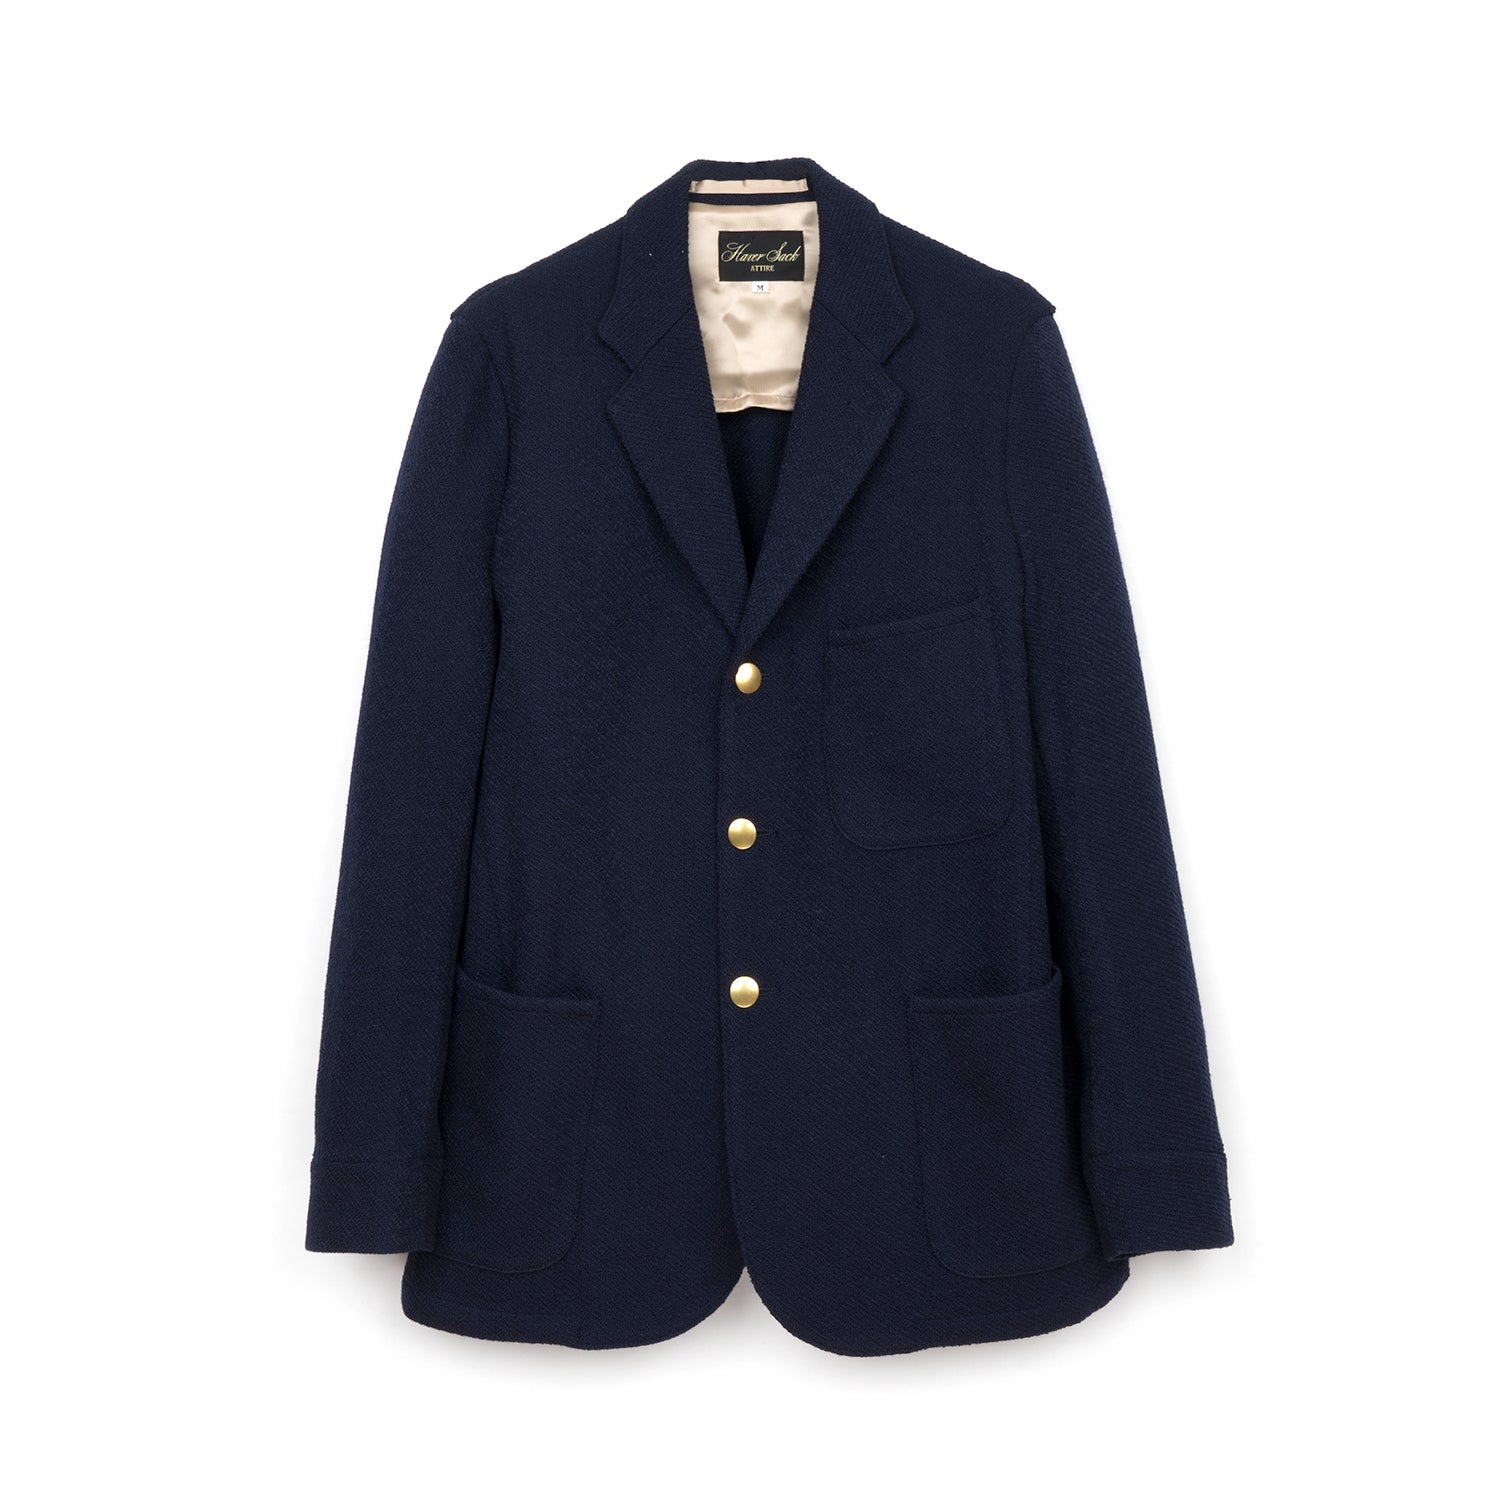 Haversack Wool Jacket Navy - 471808/59